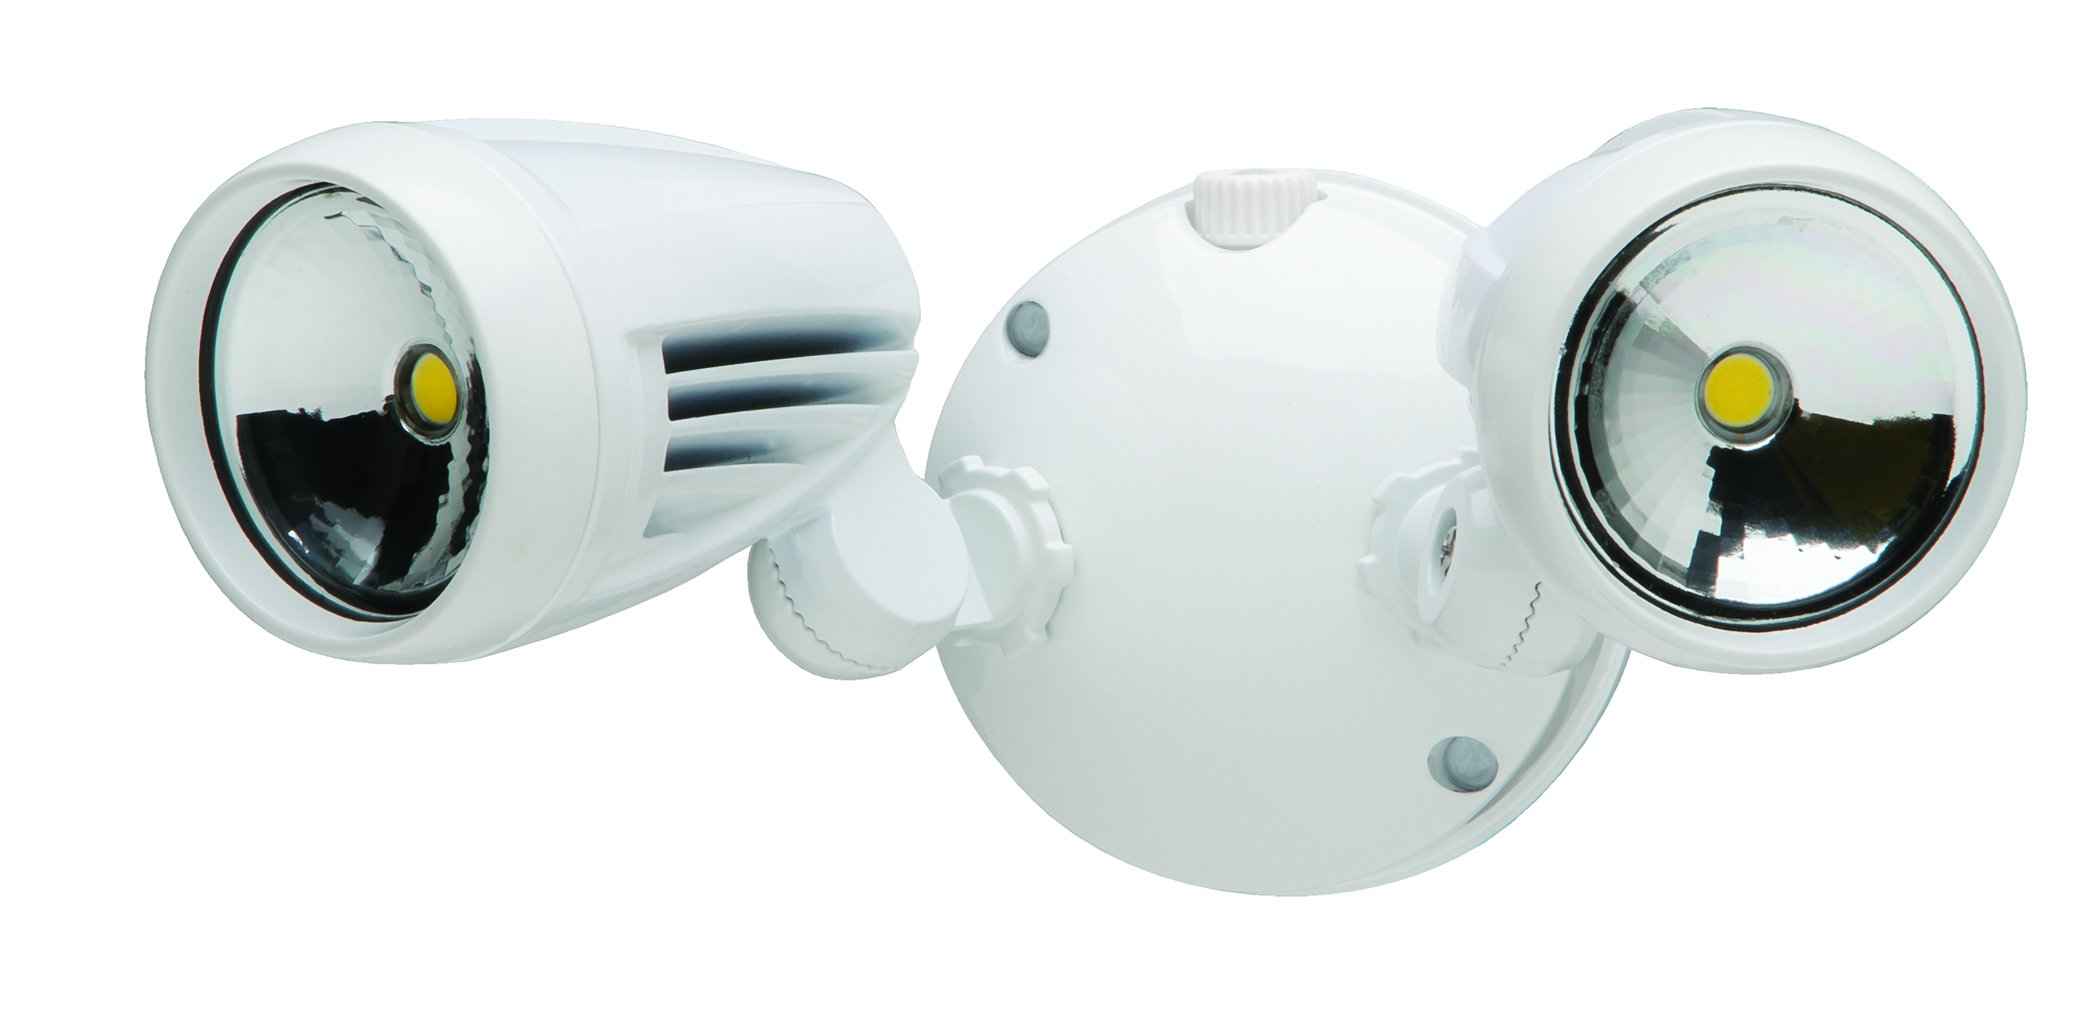 Heath/Zenith HZ-8485-WH-A LED Security Lighting, White